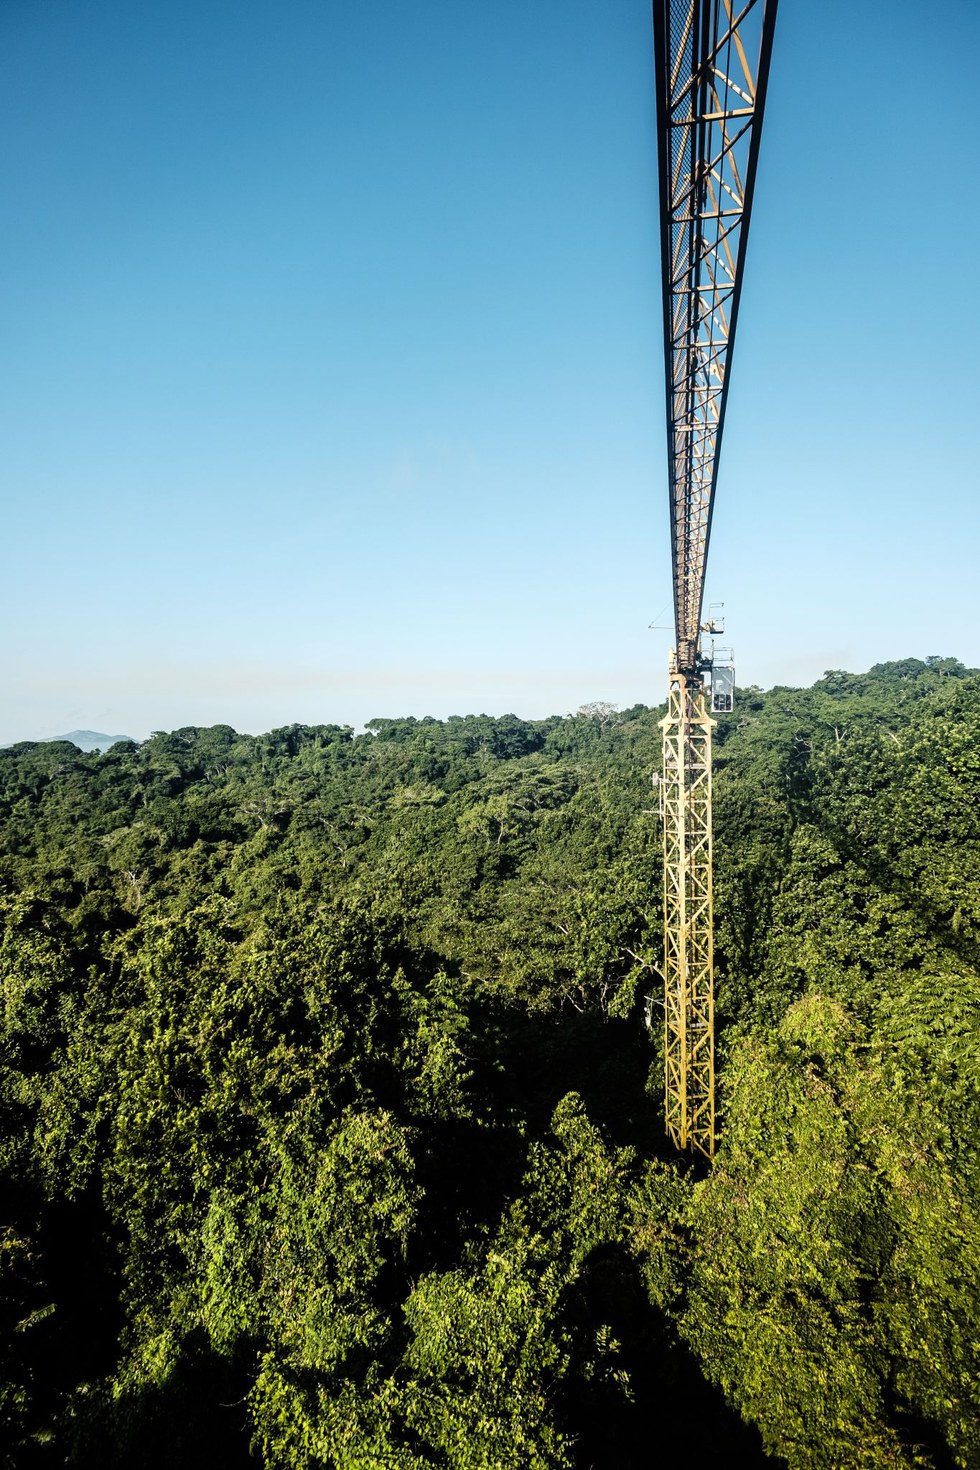 The canopy crane at the Parque